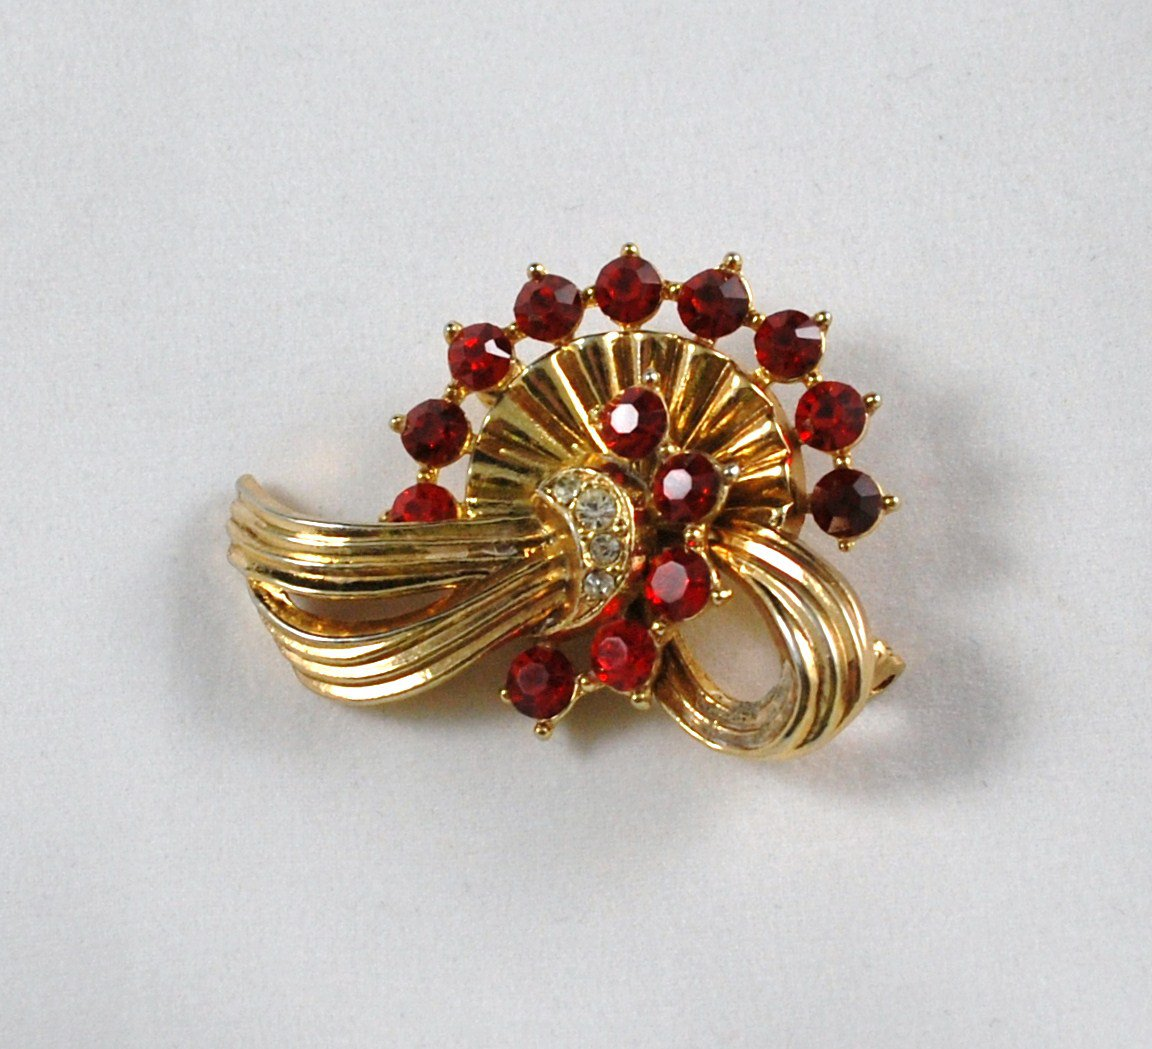 Vintage Brooch Pin Pendant Goldtone  Ribbon Bow Design Red Rhinestones